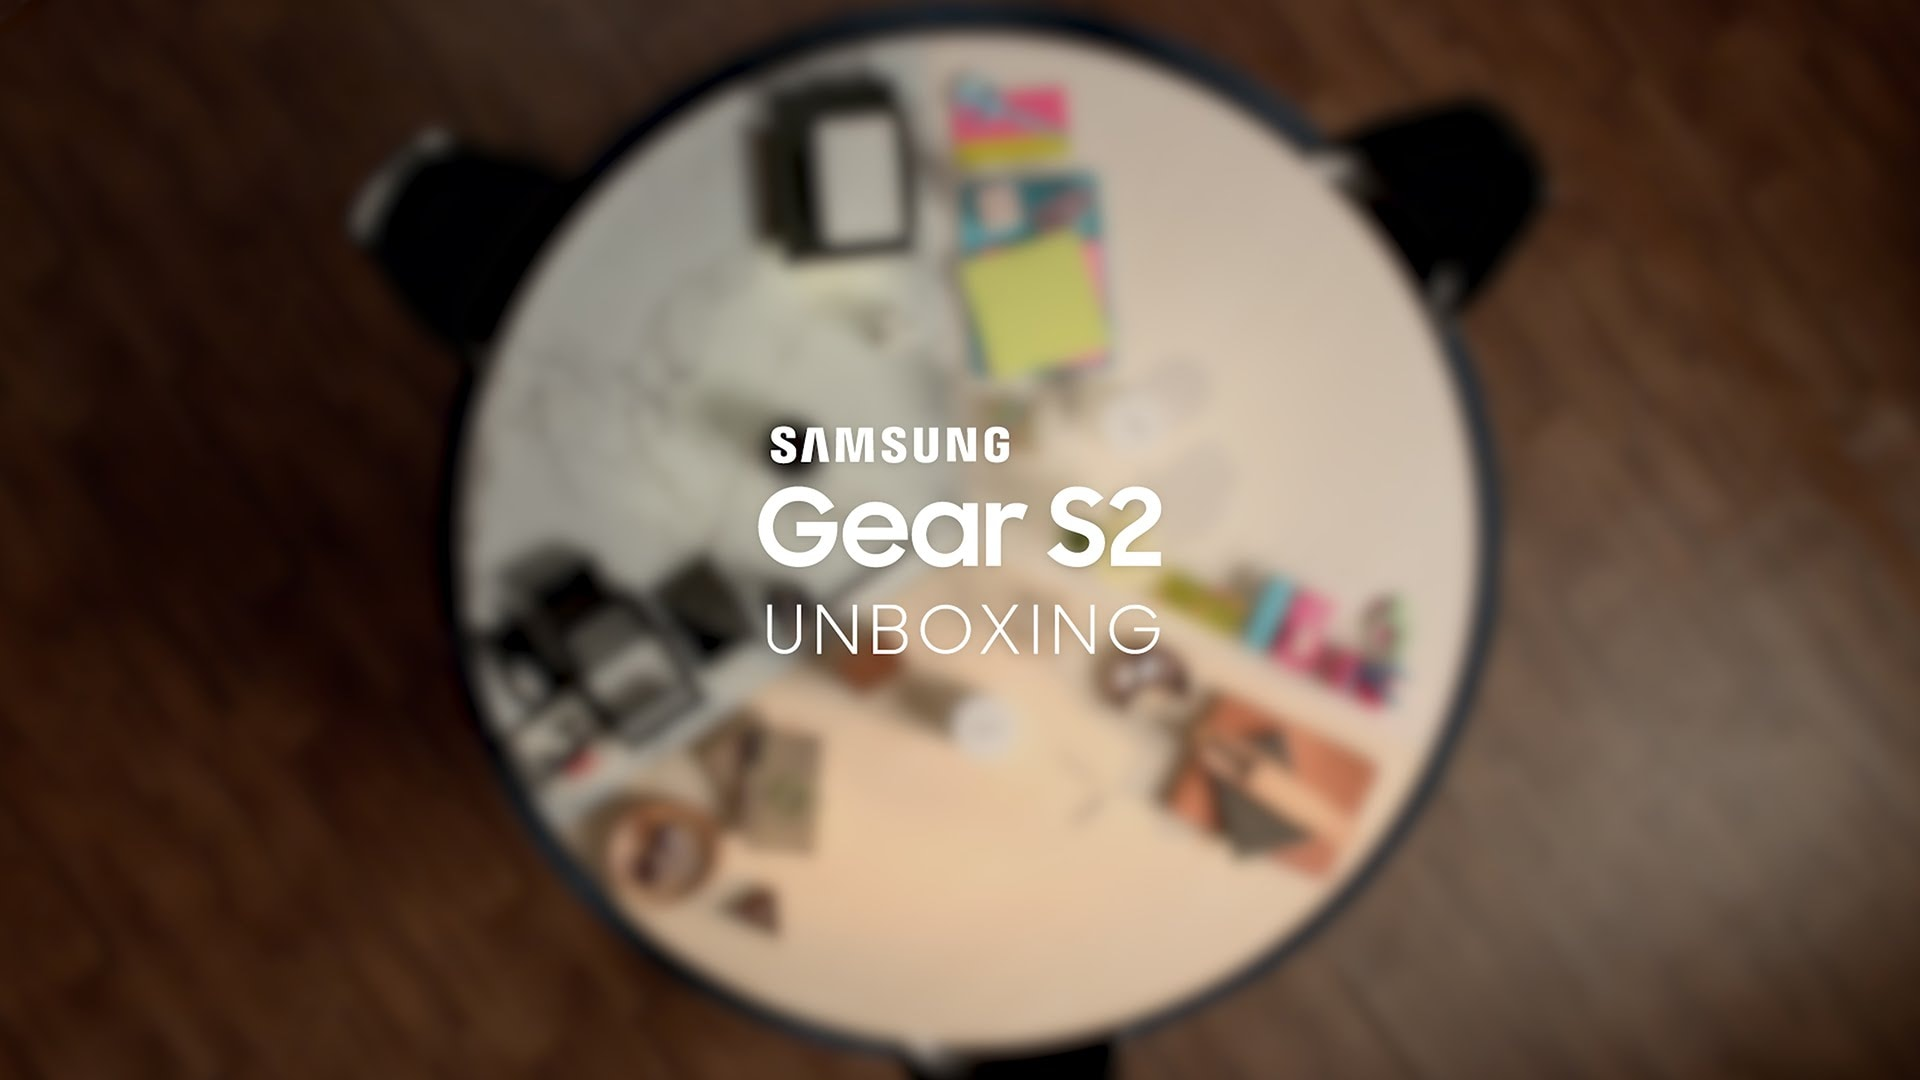 Samsung Gear S2: Video de desempaque oficial